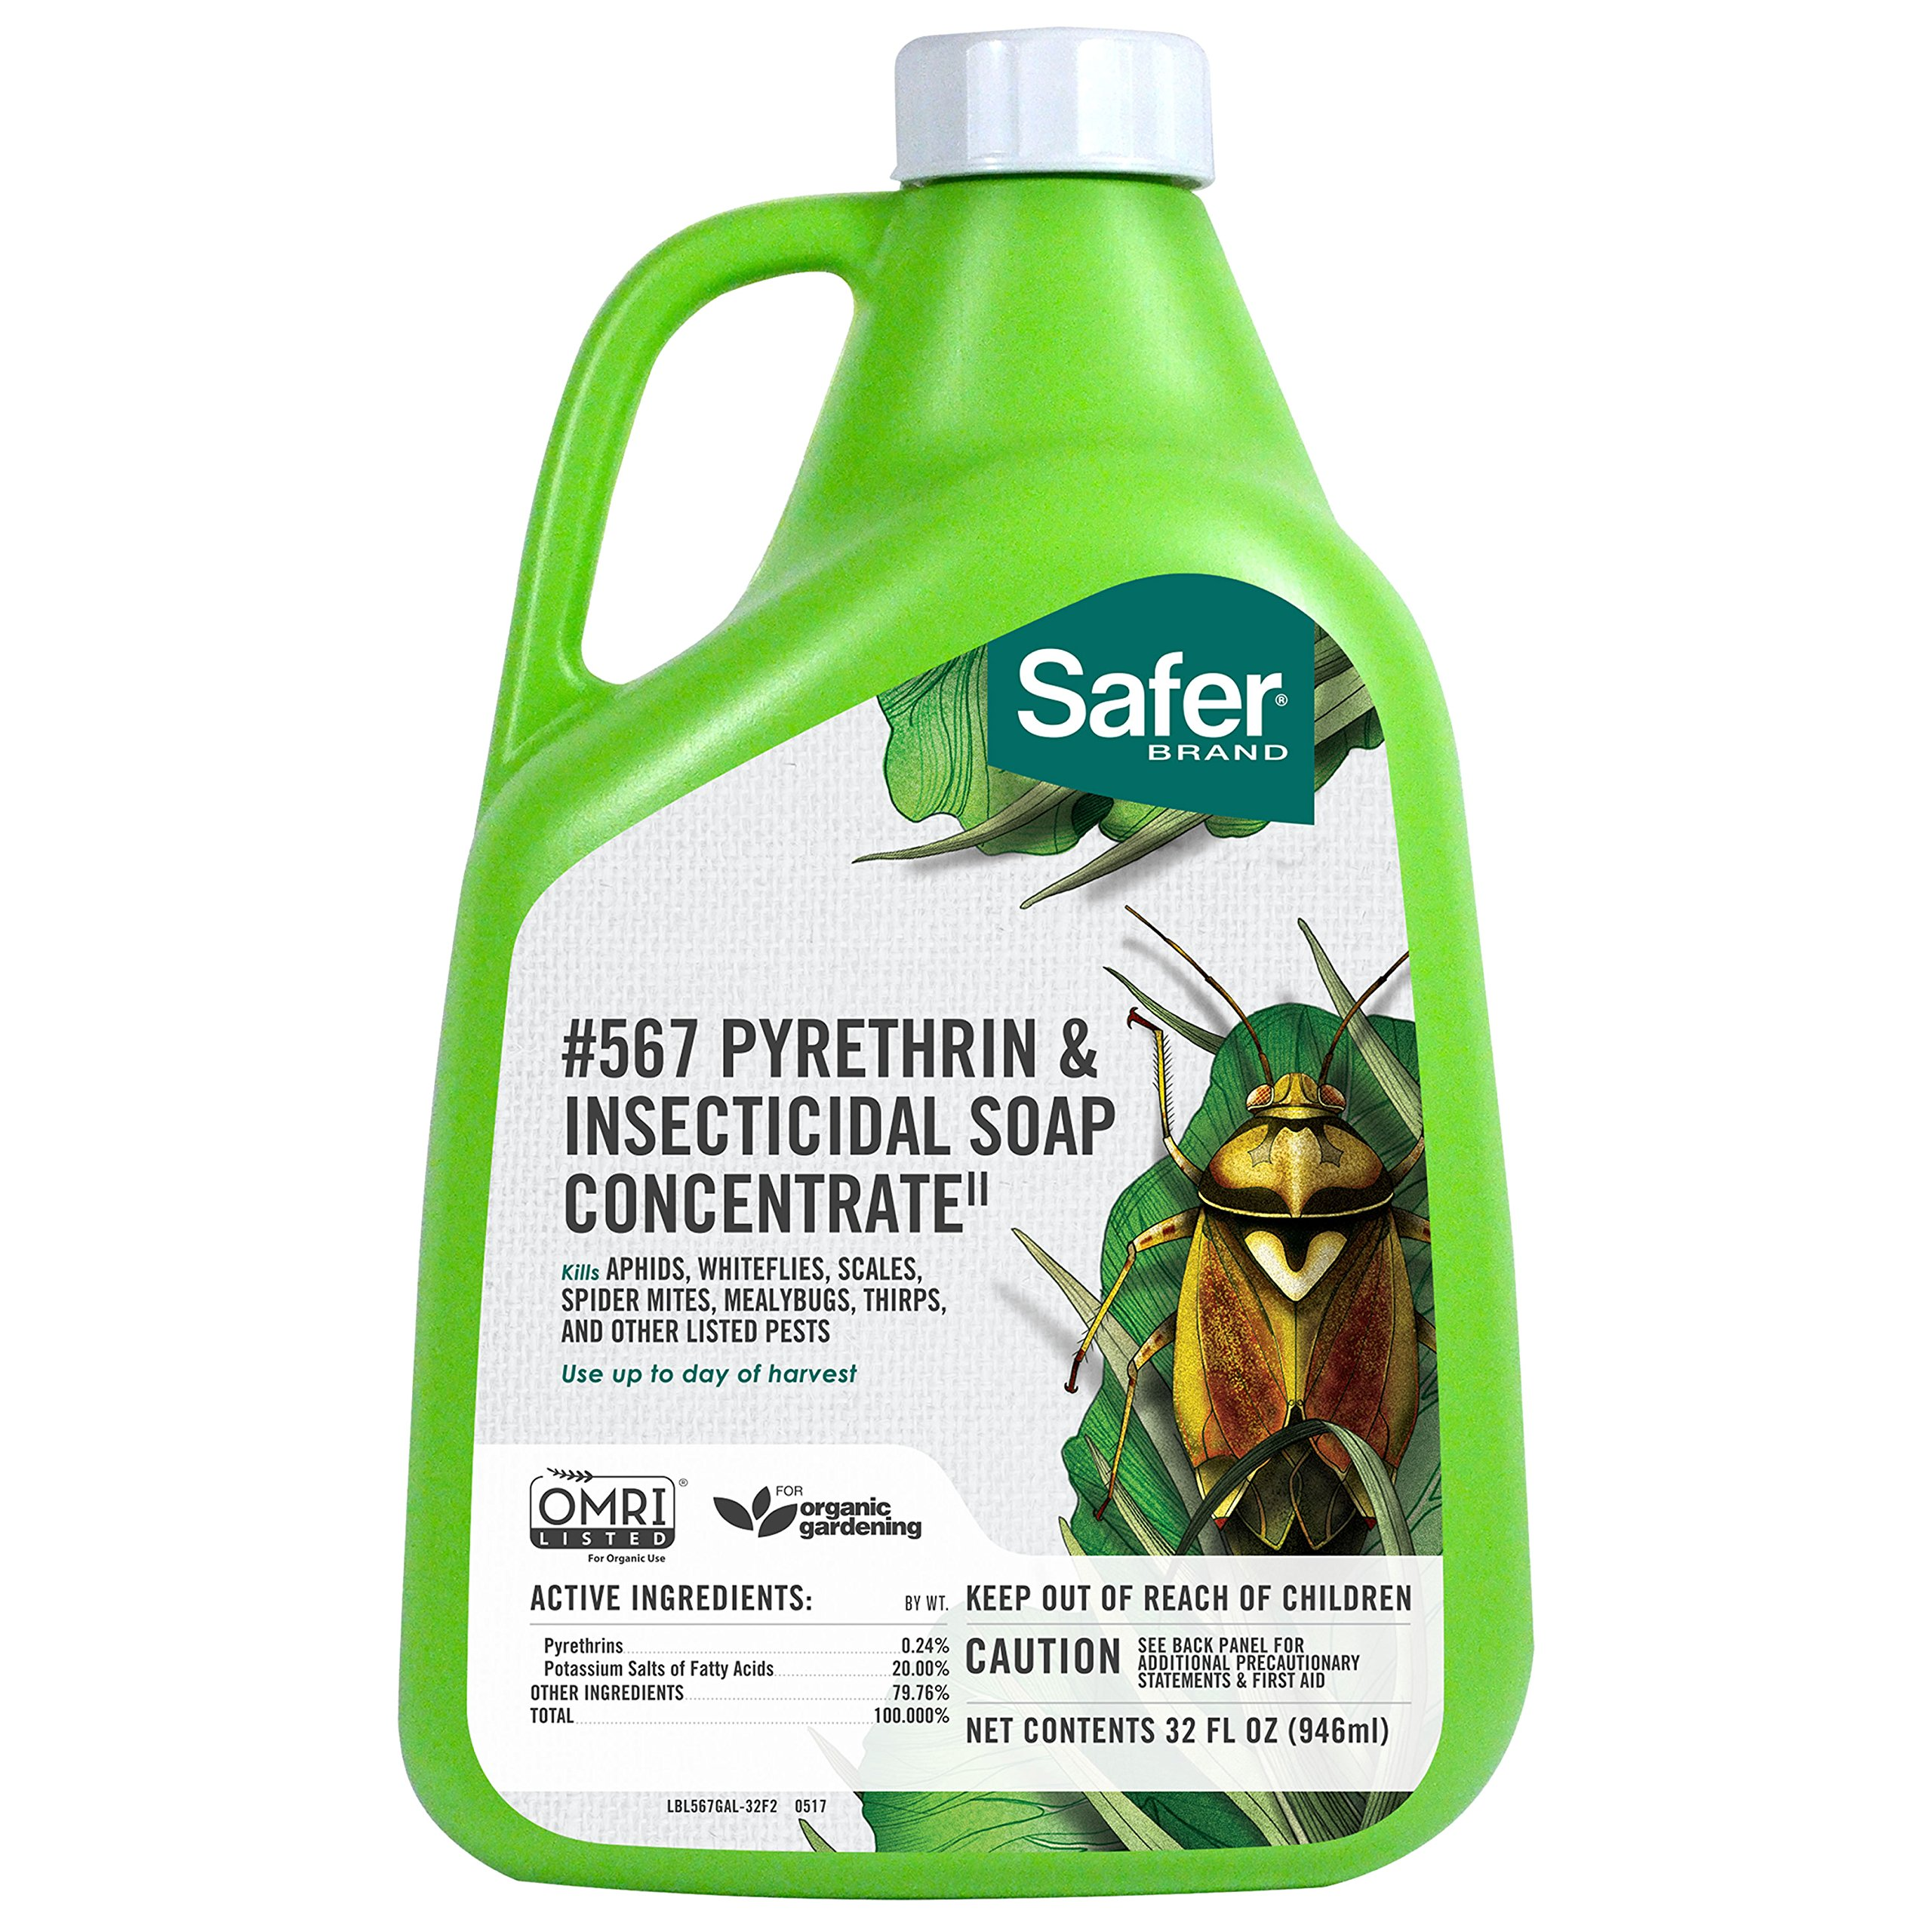 Safer Brand Insecticidal Soap & Pyrethrin Concentrate, 32-Ounce by Safer Brand